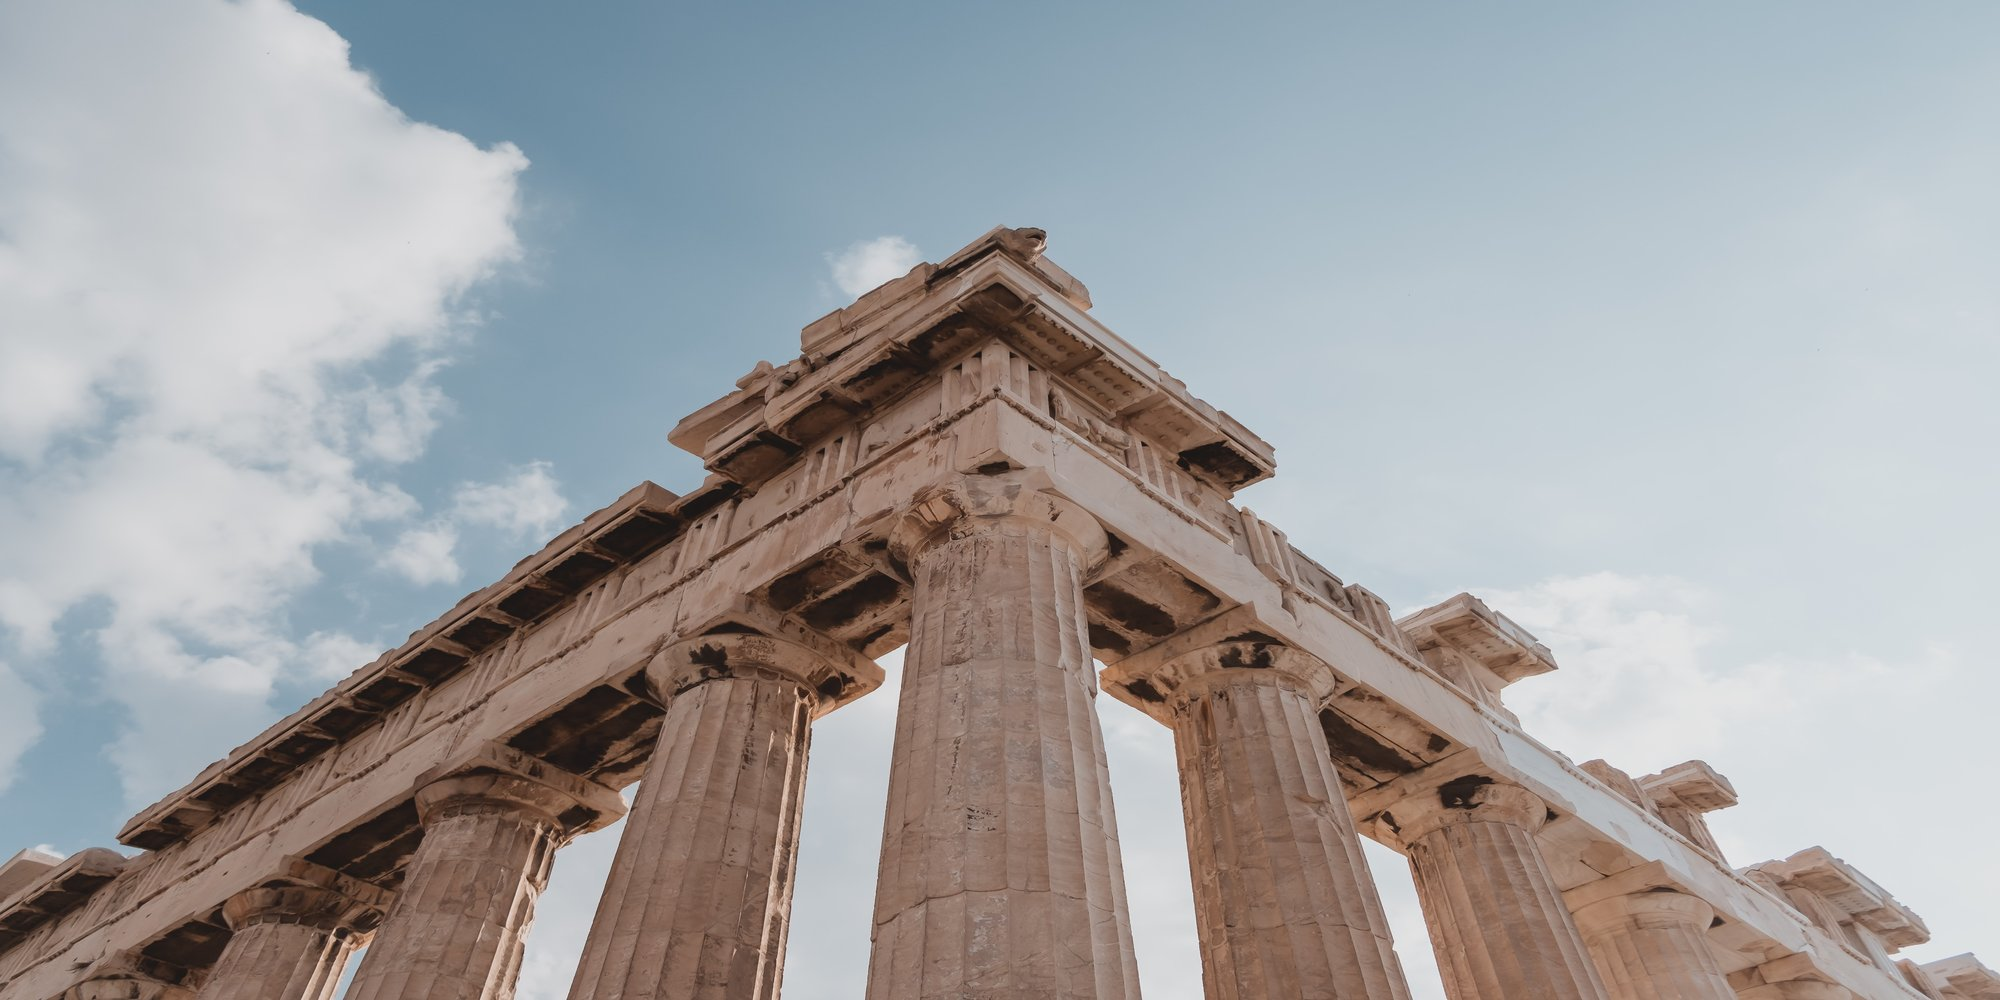 Thomas Murray - The National Bank of Greece Enhances its Counterparty Monitoring